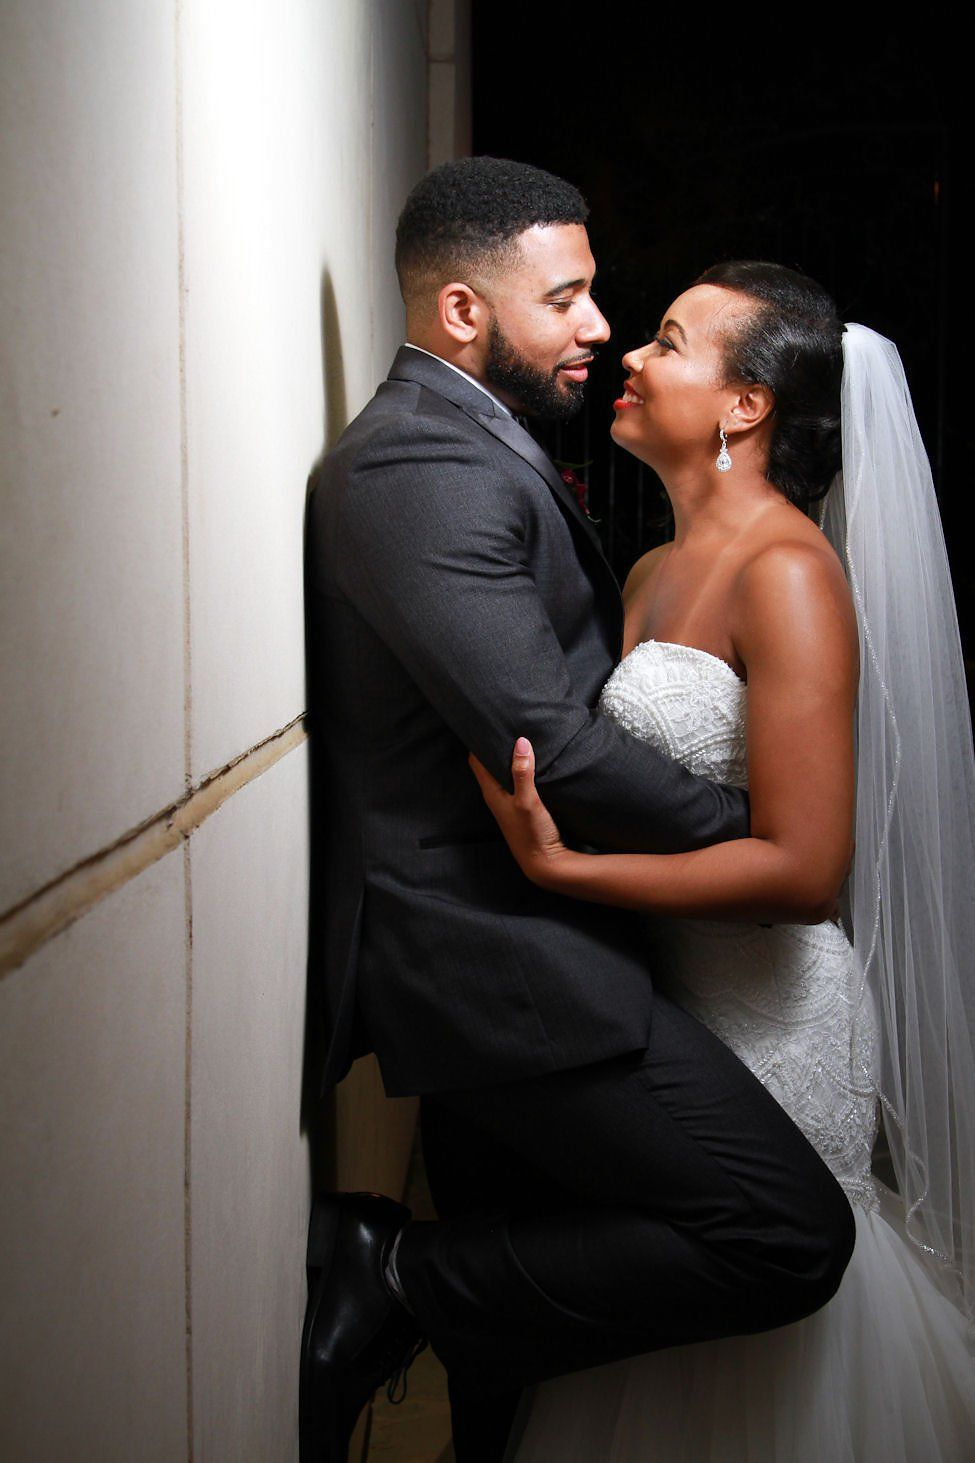 Wedding dress donation  Tiera and Brianus romance was made official during this dreamy